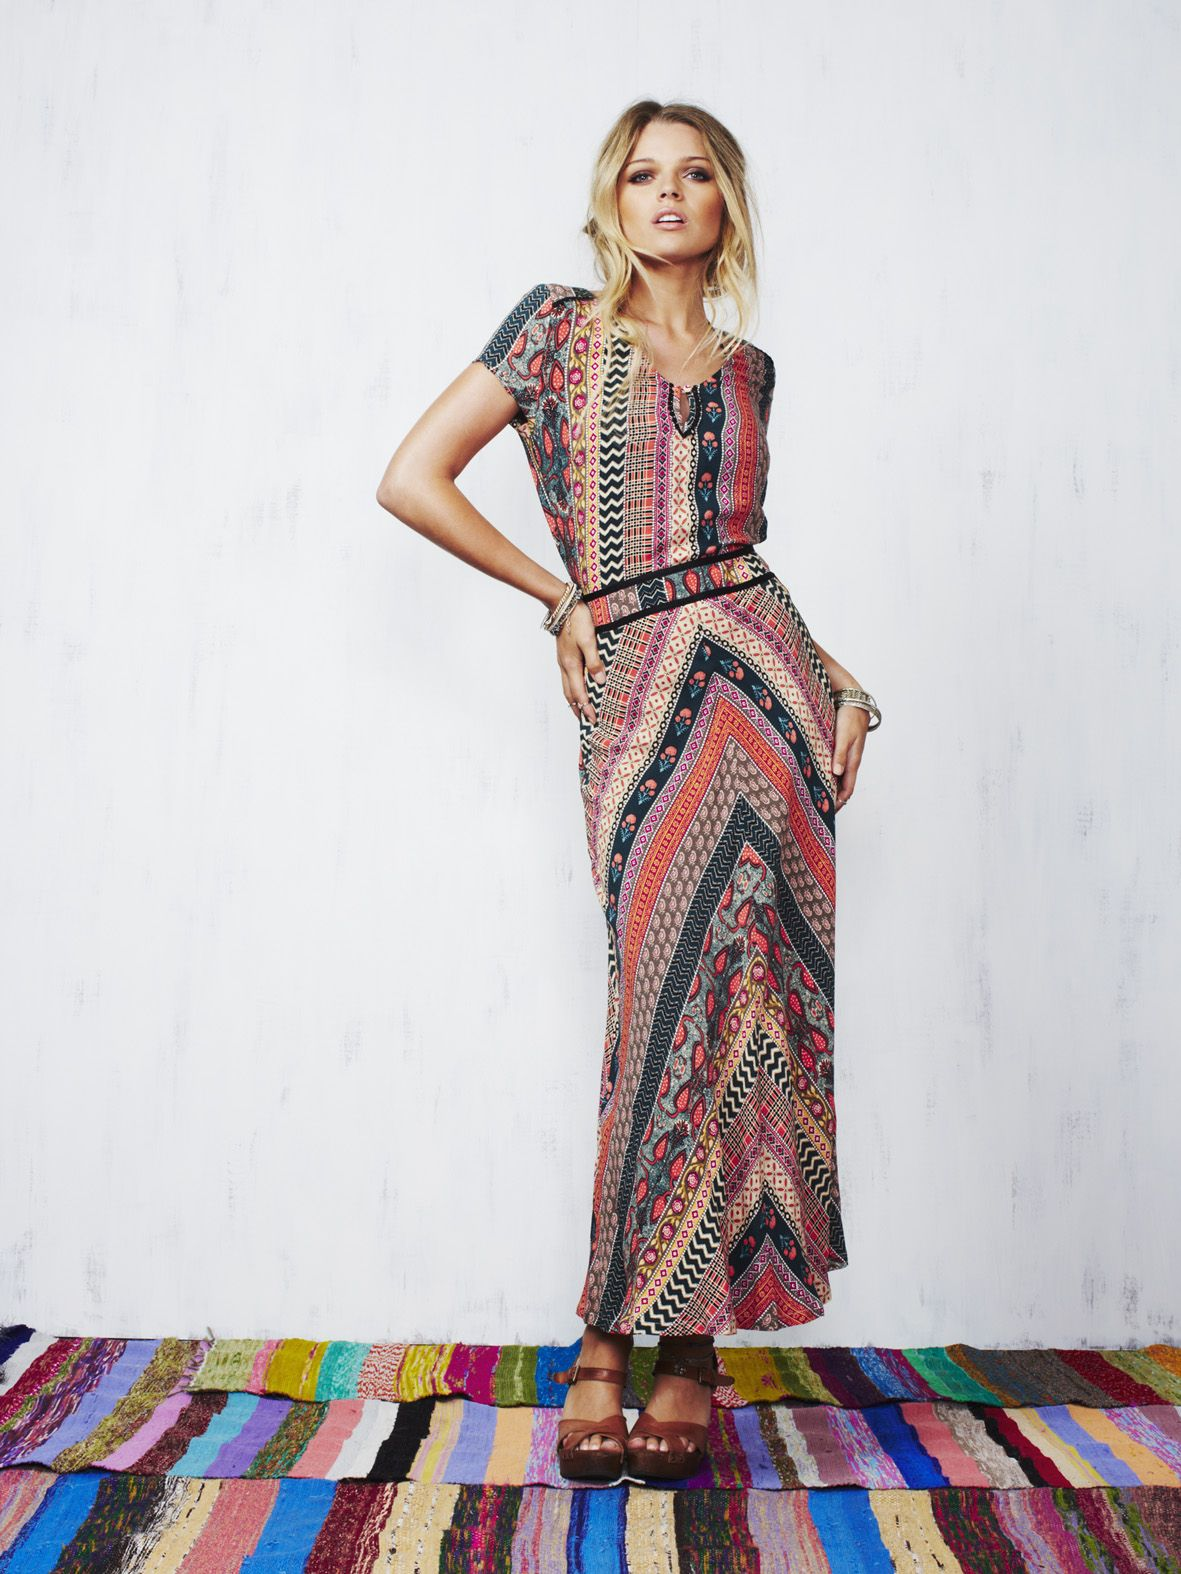 463bc9869fc998 STUNNING Tigerlily dress. Beautiful bohemian print & perfectly cut. A  spring/summer must have.